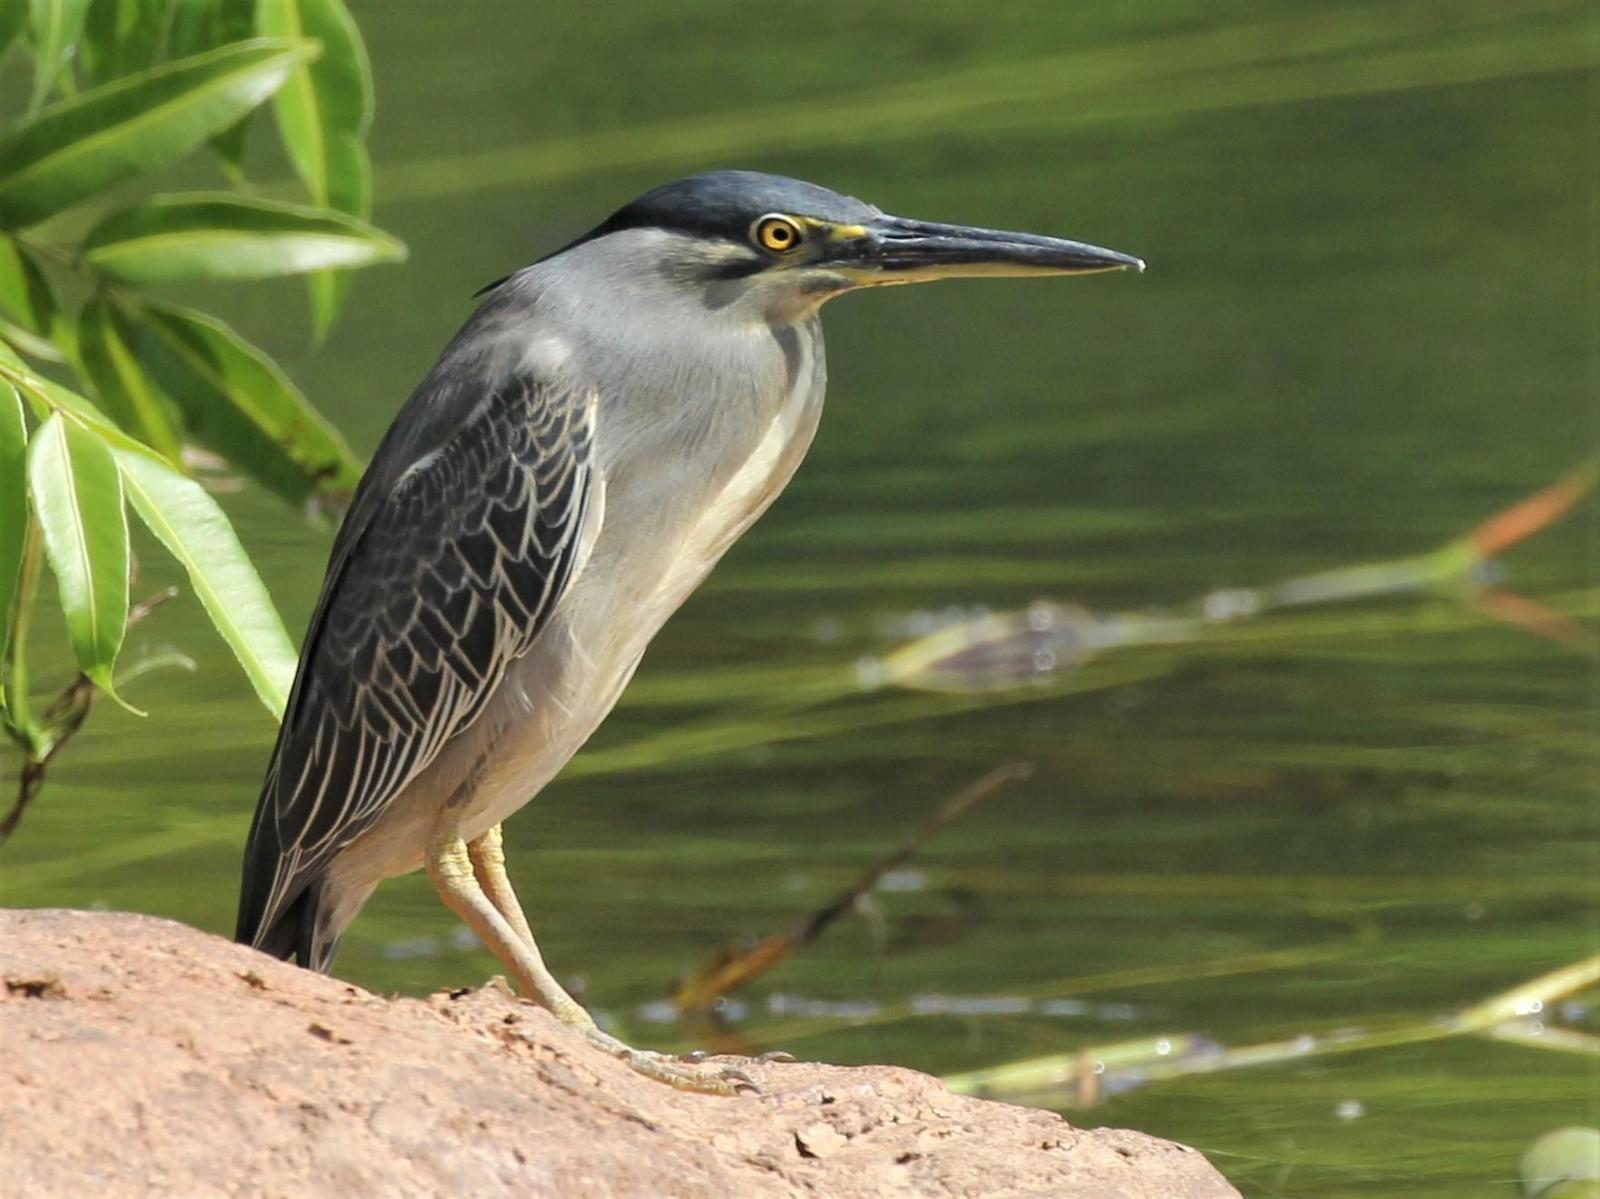 Striated Heron Photo by Steven Cheong